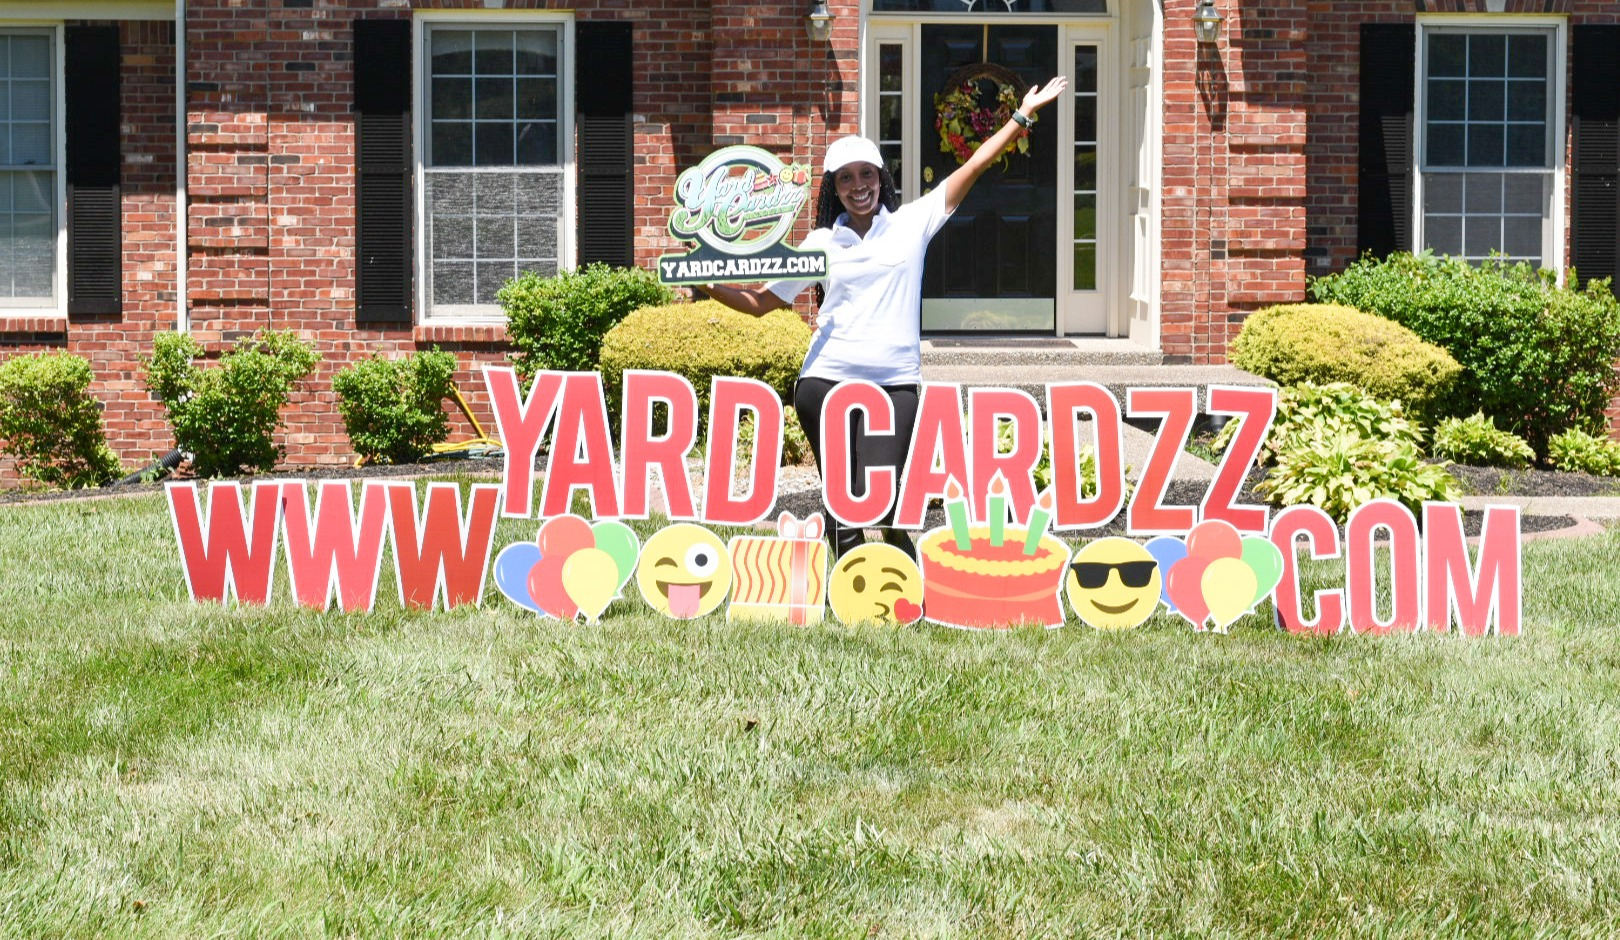 Face of Yard Cardzz